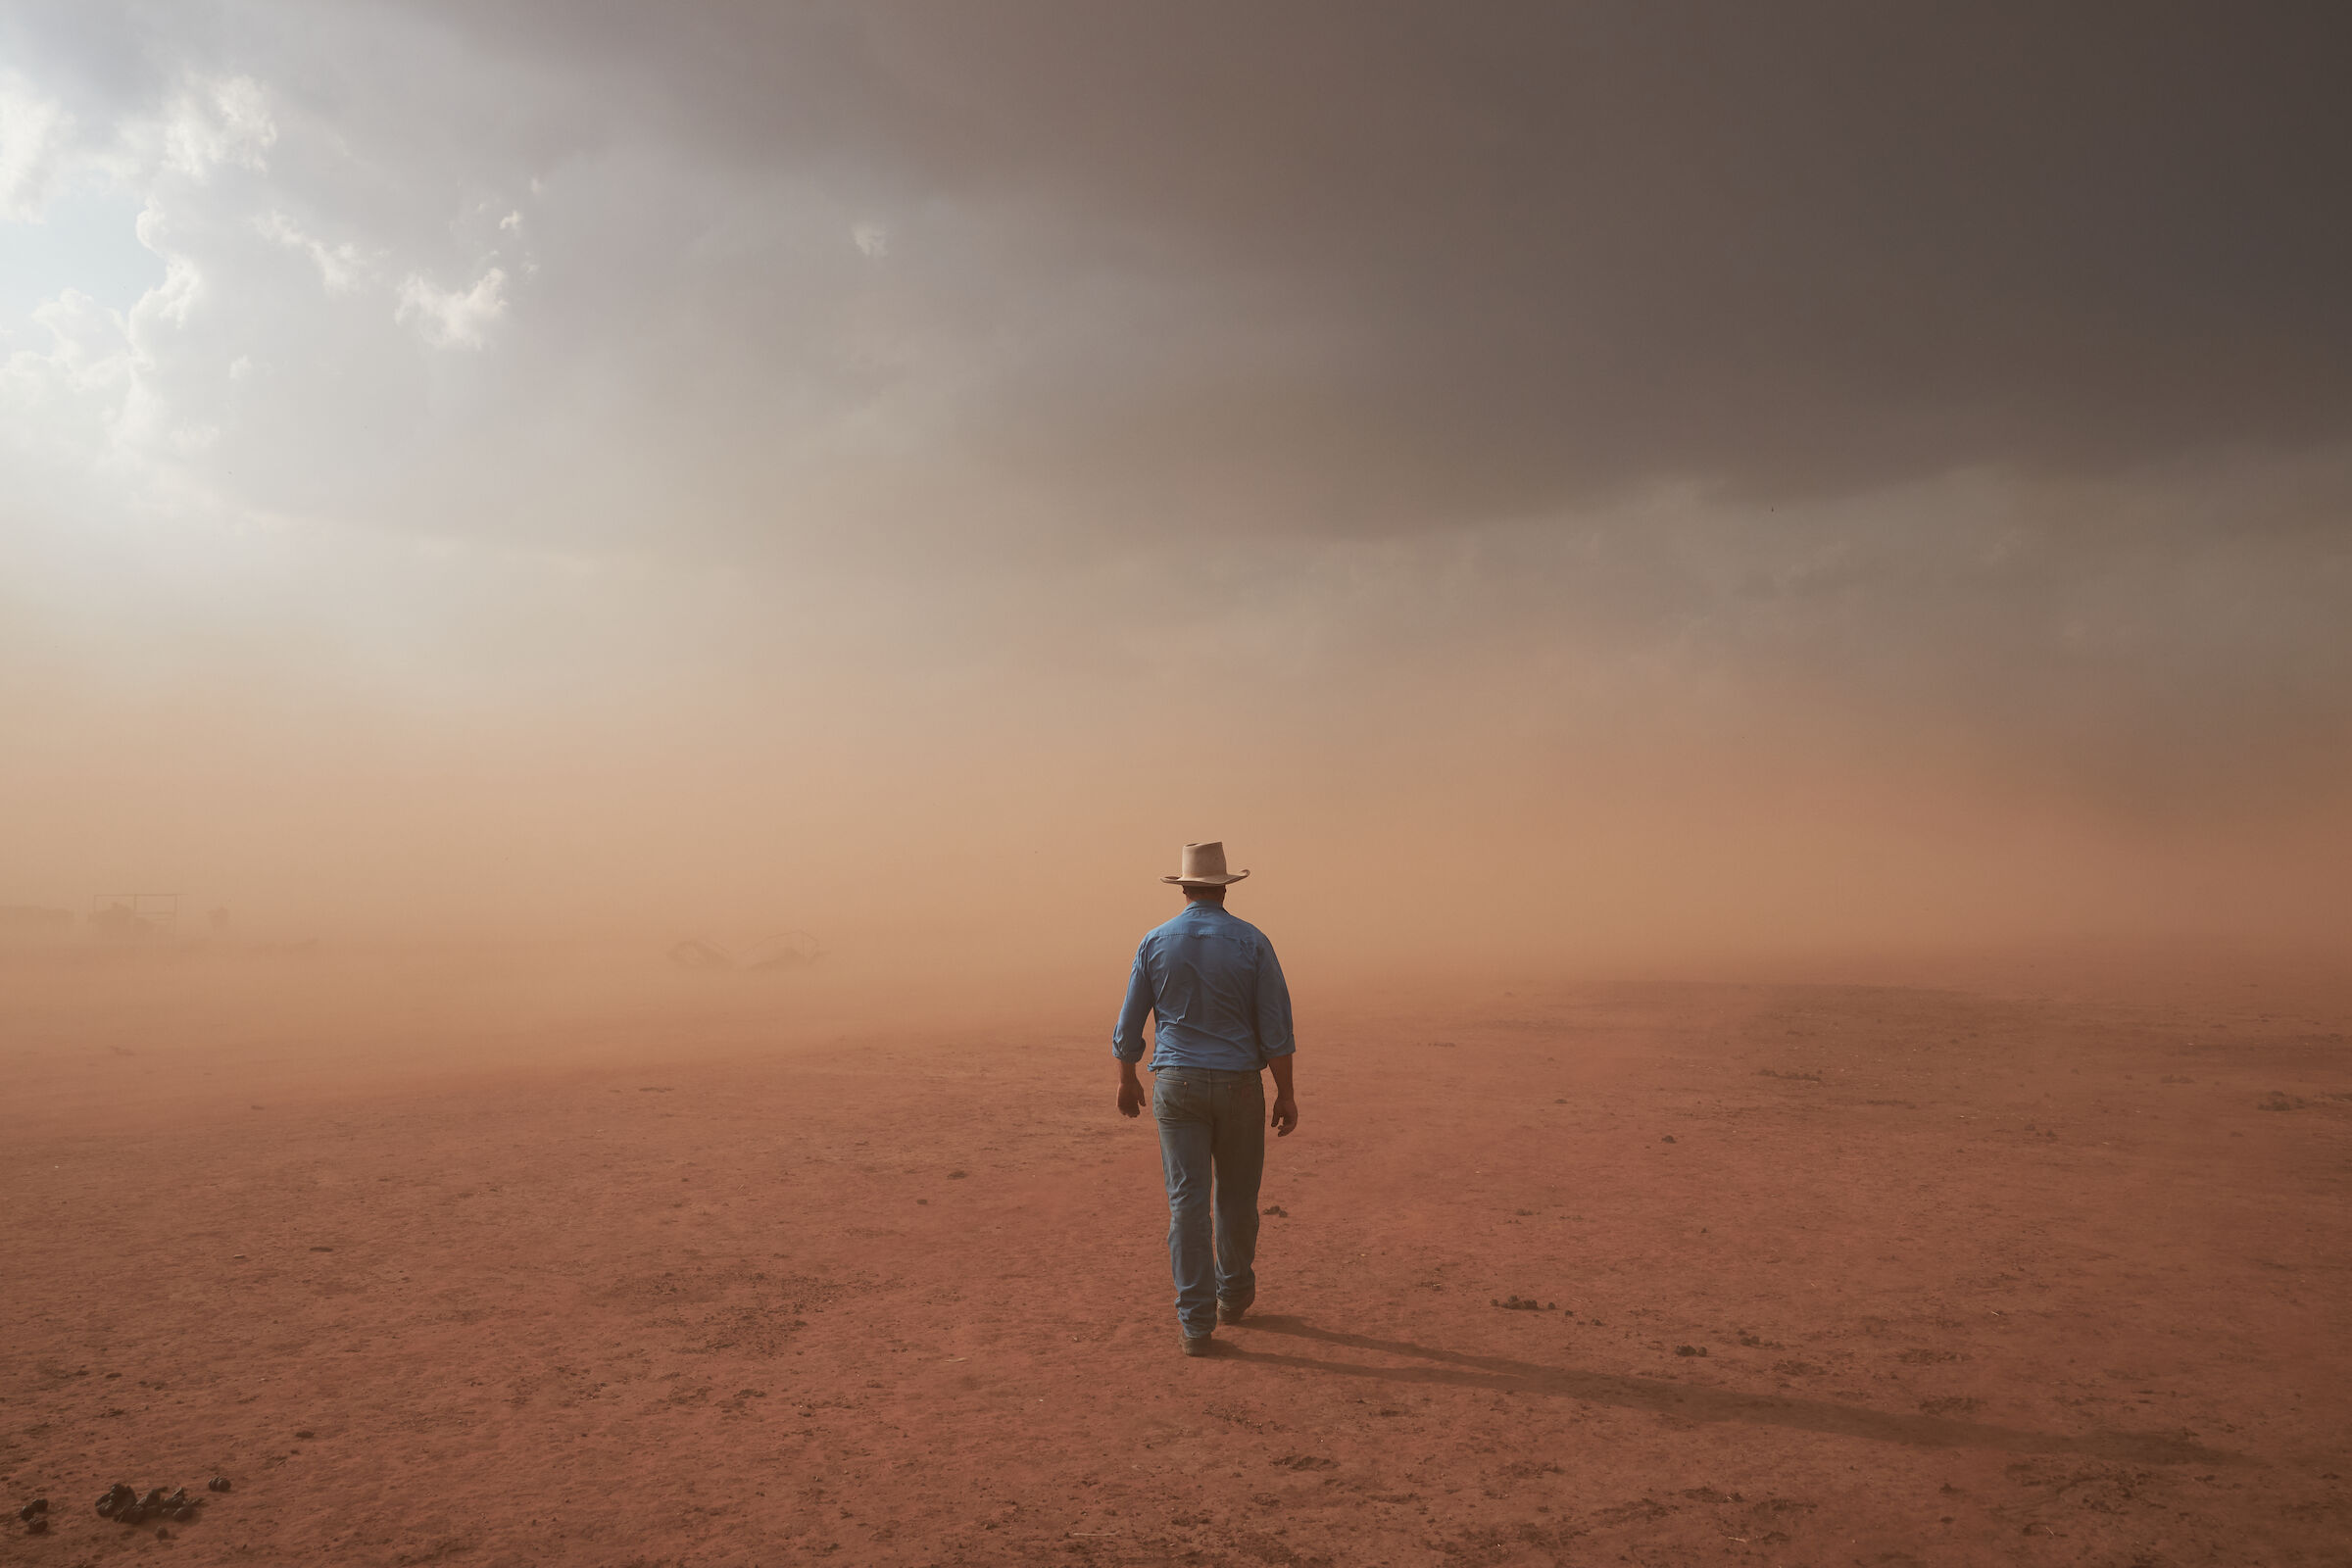 A photograph of a man in a drought afflicted landscape